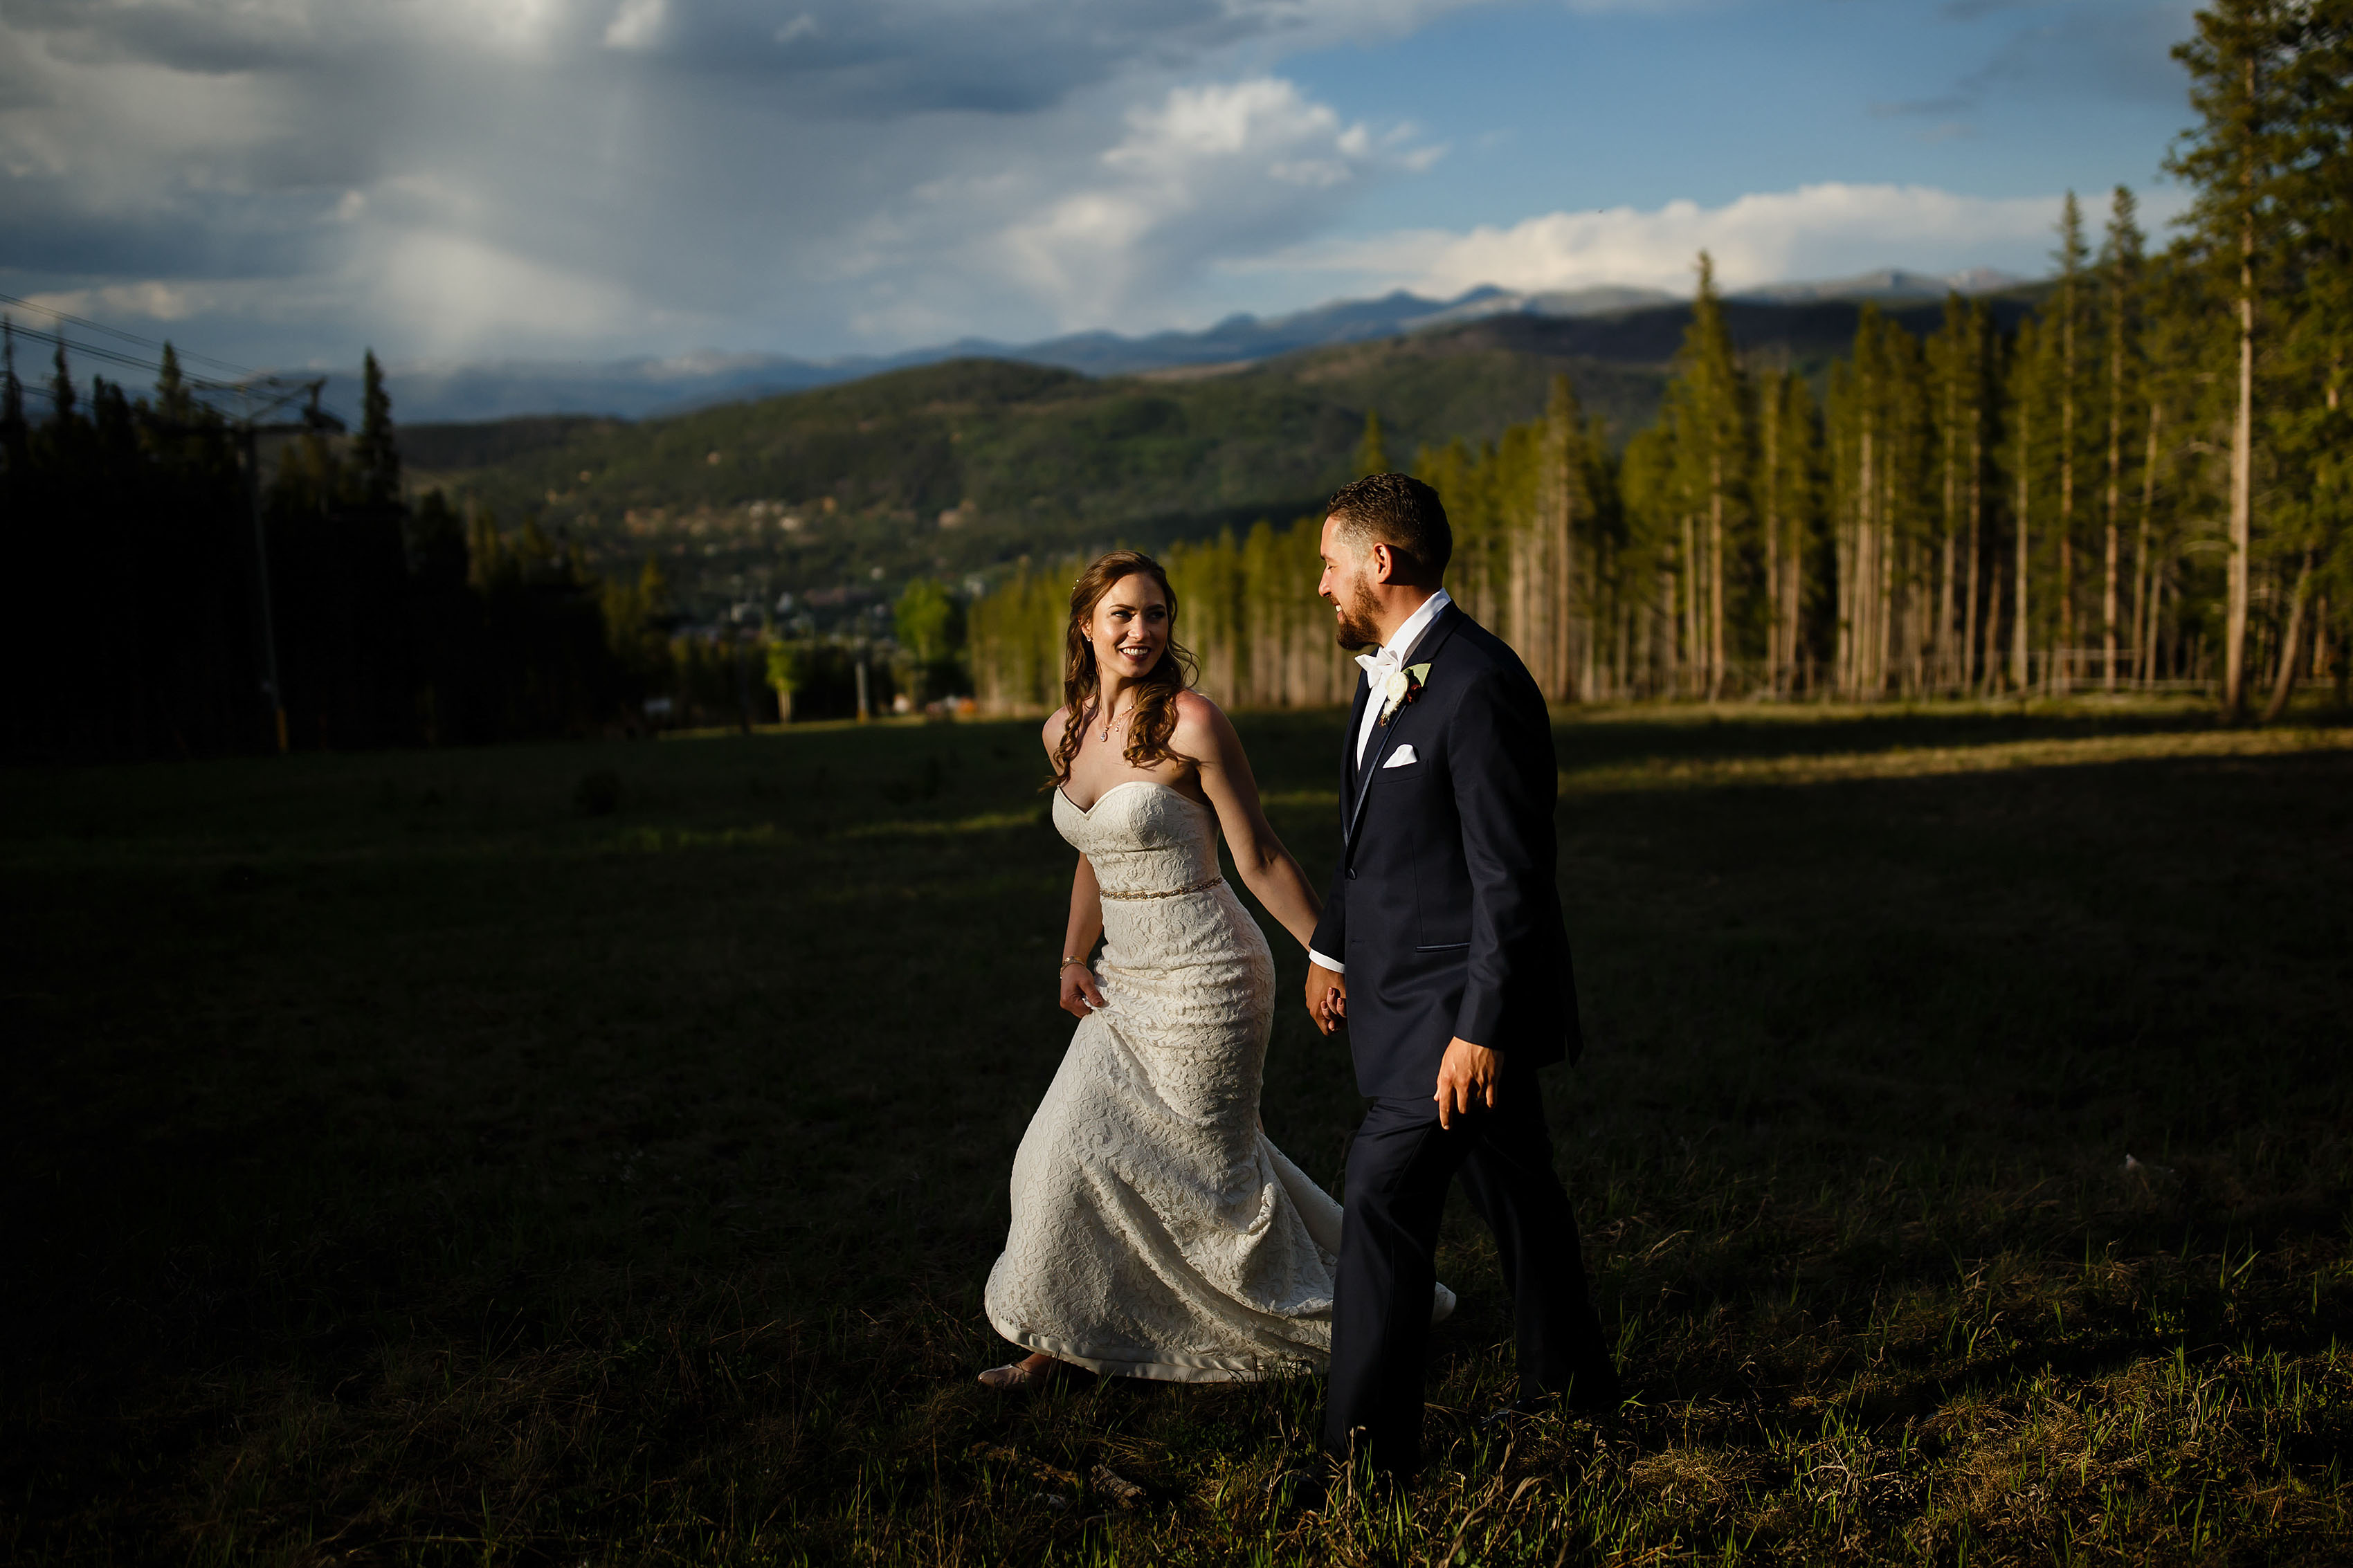 Newlyweds walk together behind Tenmile Station during their wedding